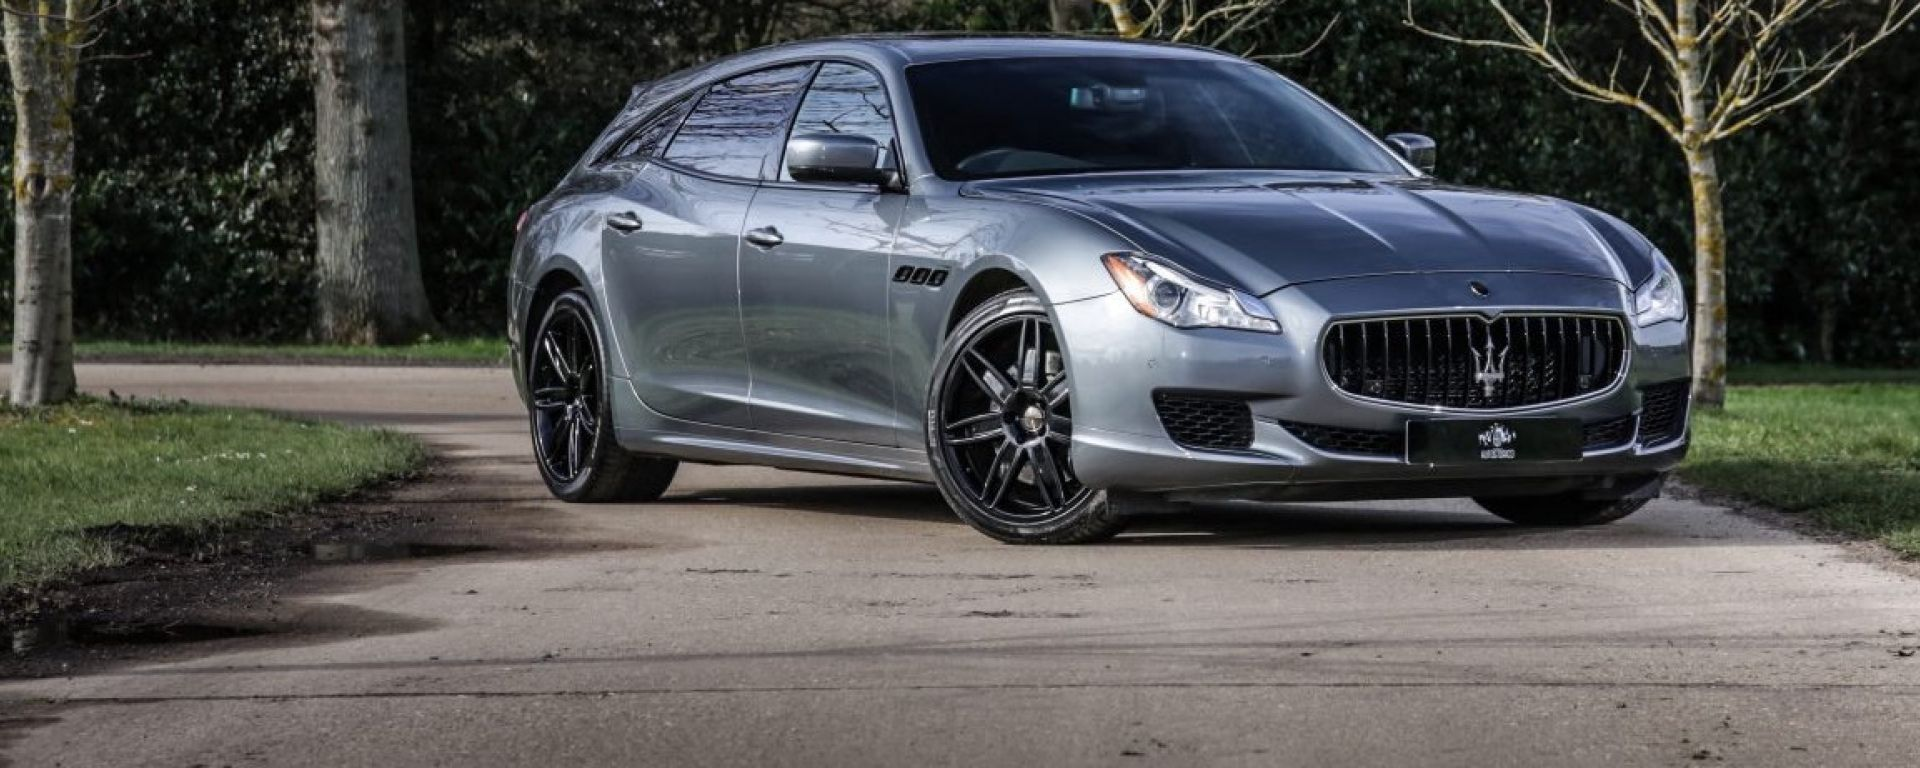 Maserati Quattroporte Shooting Brake: la one-off in vendita